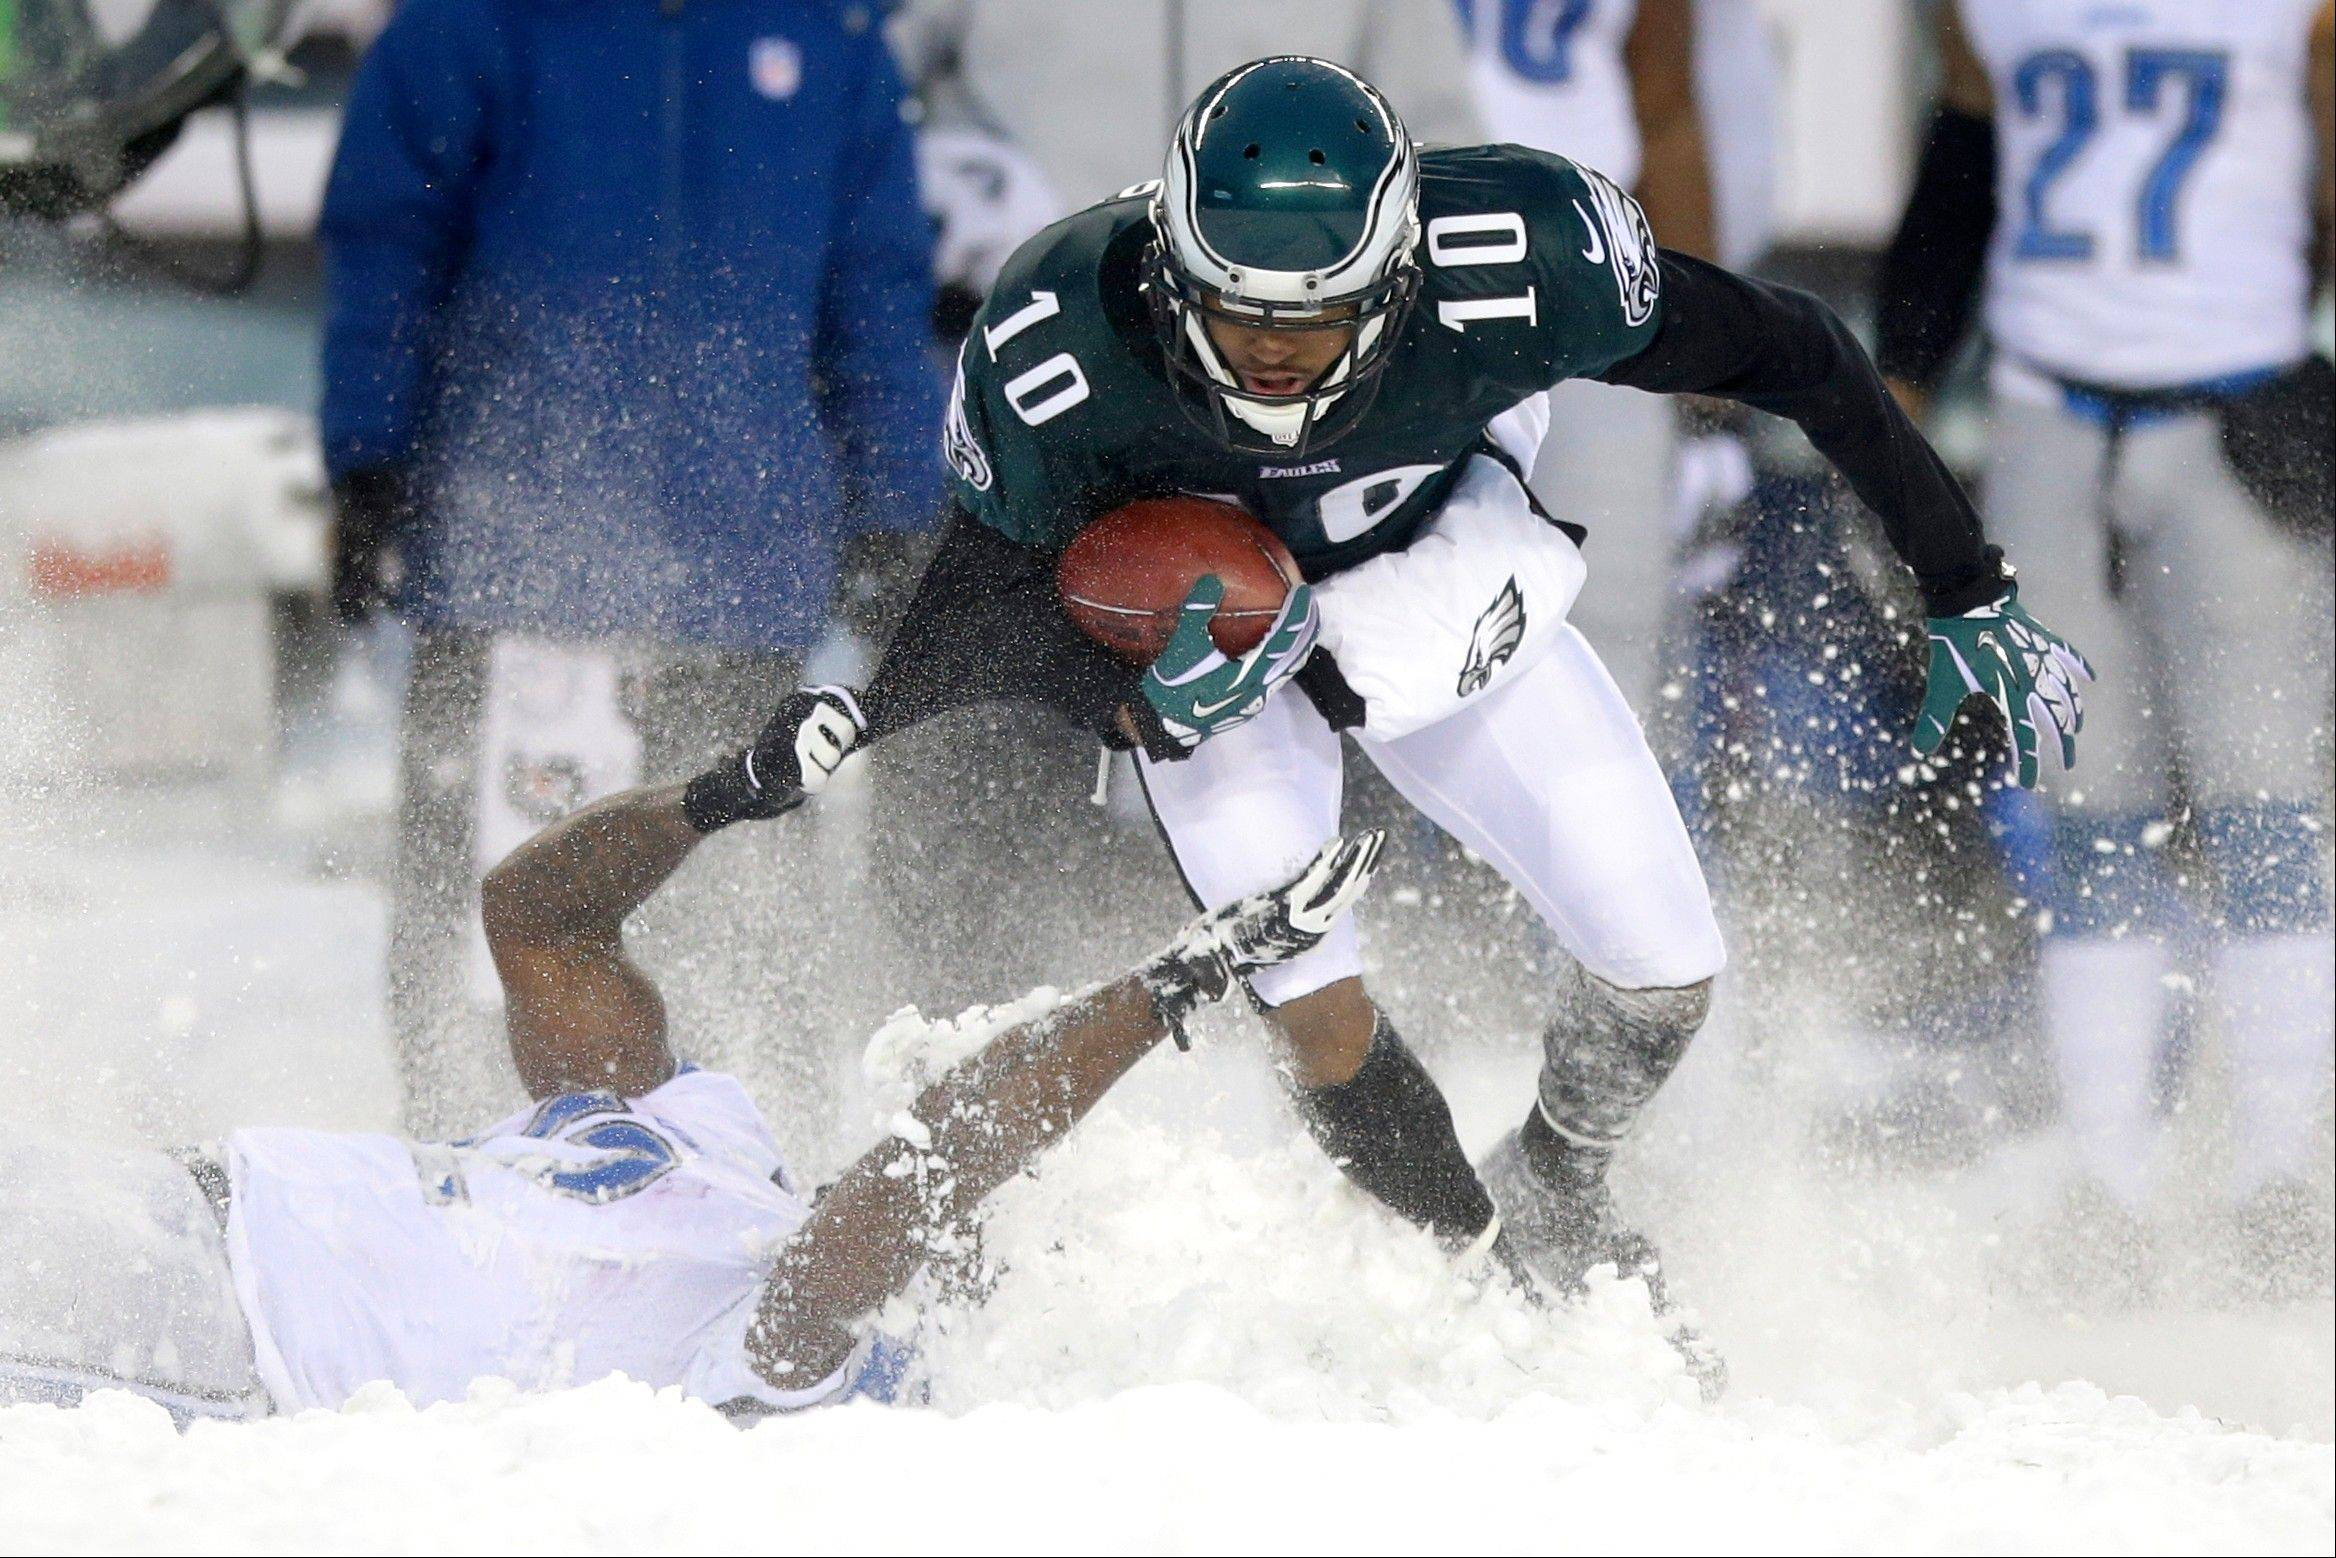 Philadelphia Eagles' DeSean Jackson (10) is tackled by Detroit Lions' Jeremy Ross (12) during the second half of an NFL football game, Sunday, Dec. 8, 2013, in Philadelphia.